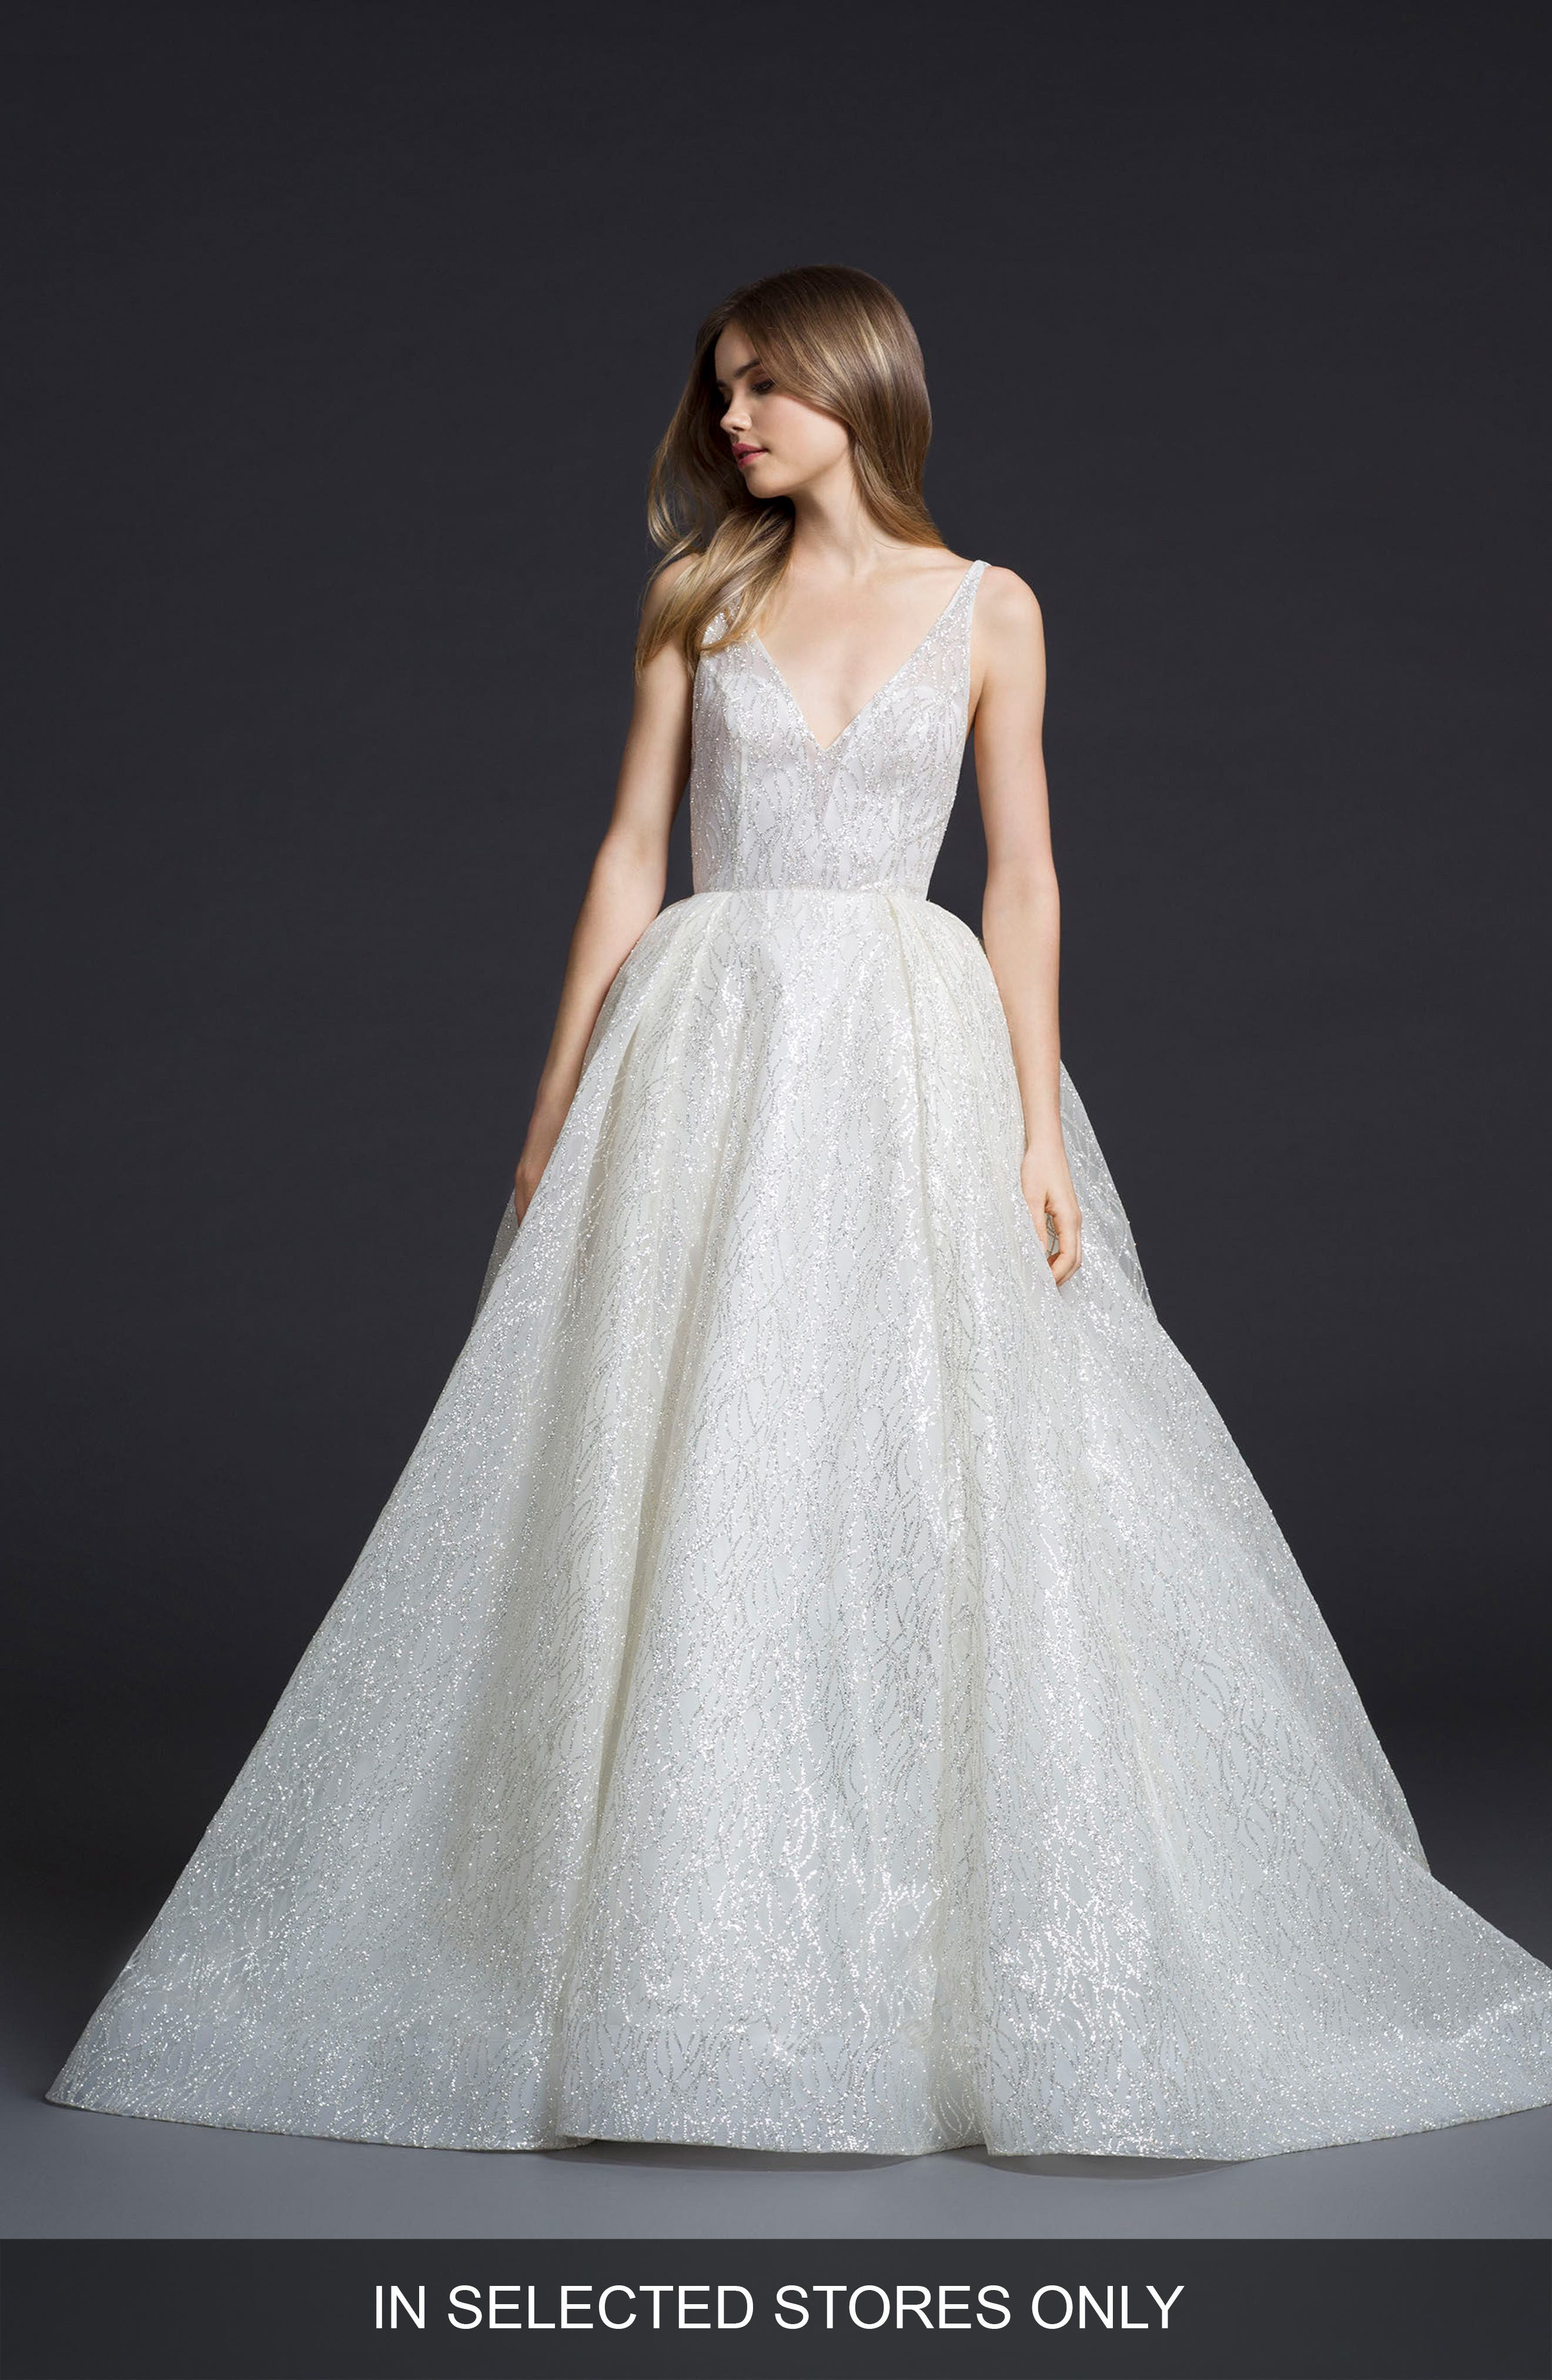 Glitter Tulle Ballgown,                             Main thumbnail 1, color,                             IVORY